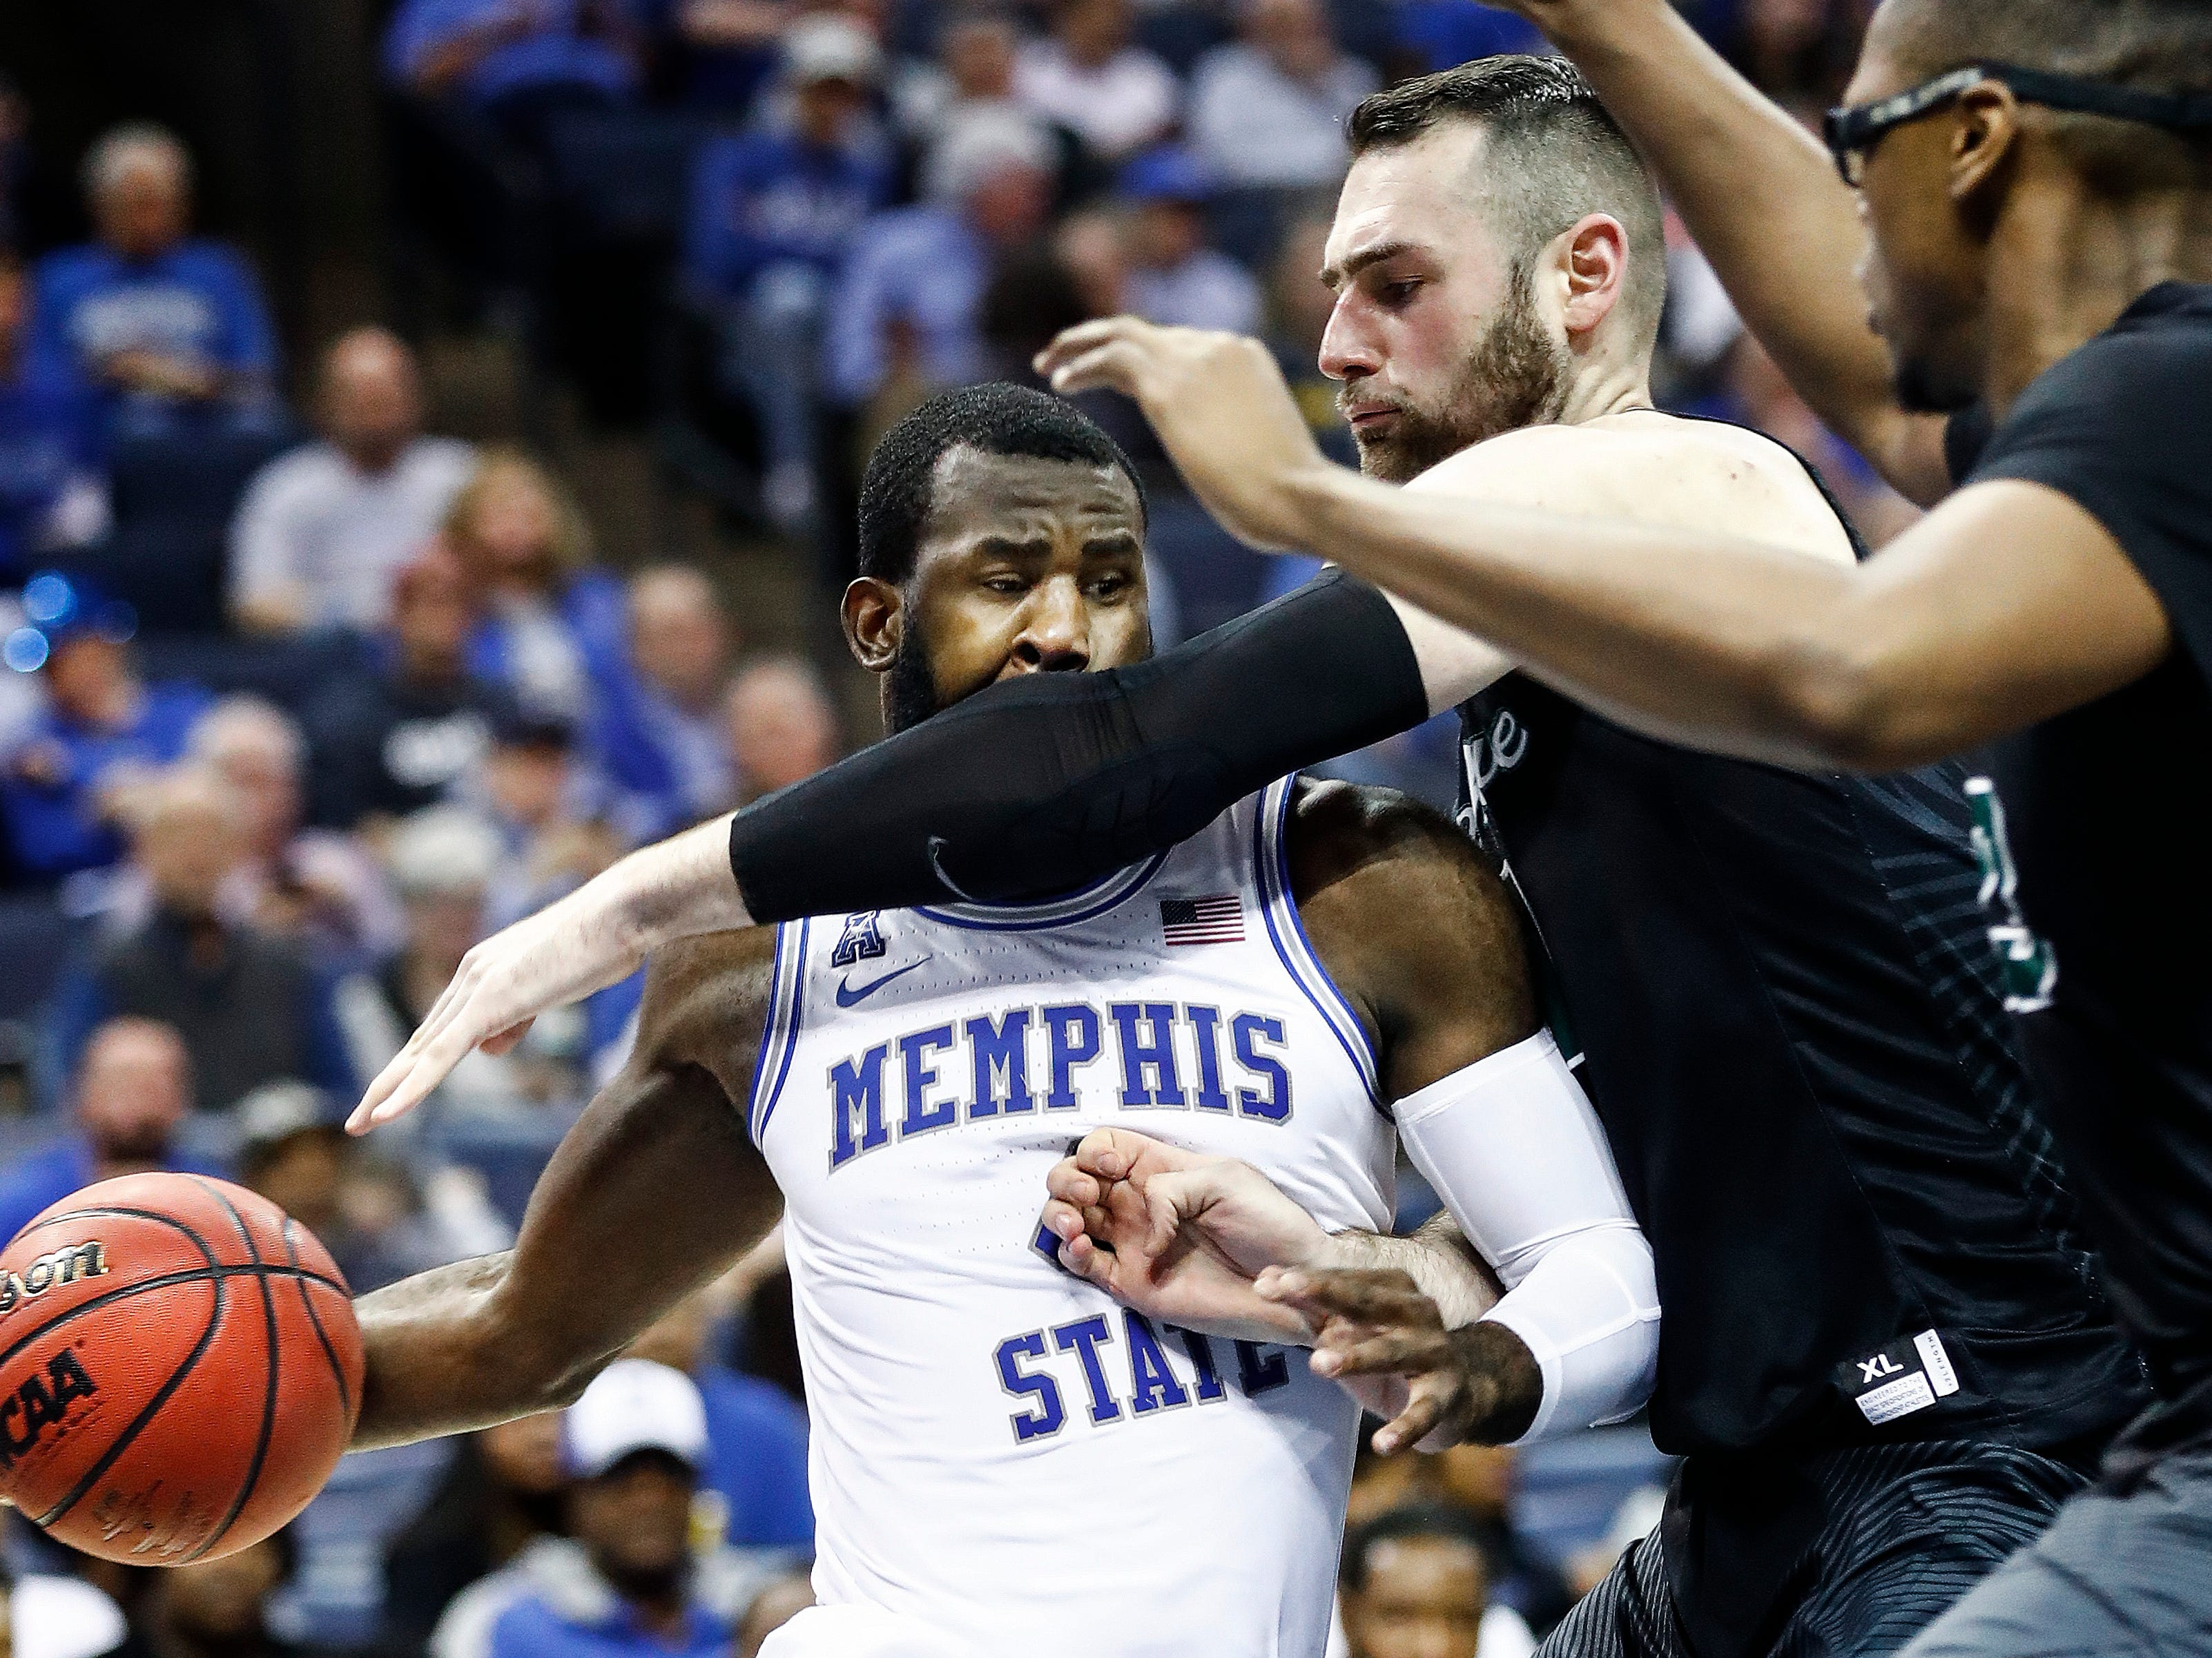 Memphis forward Raynere Thornton (left) loses the ball after running into Tulane defender Samir Sehic (right) during action of their first round AAC Tournament game at the  FedExForum, Thursday, March 14, 2019.